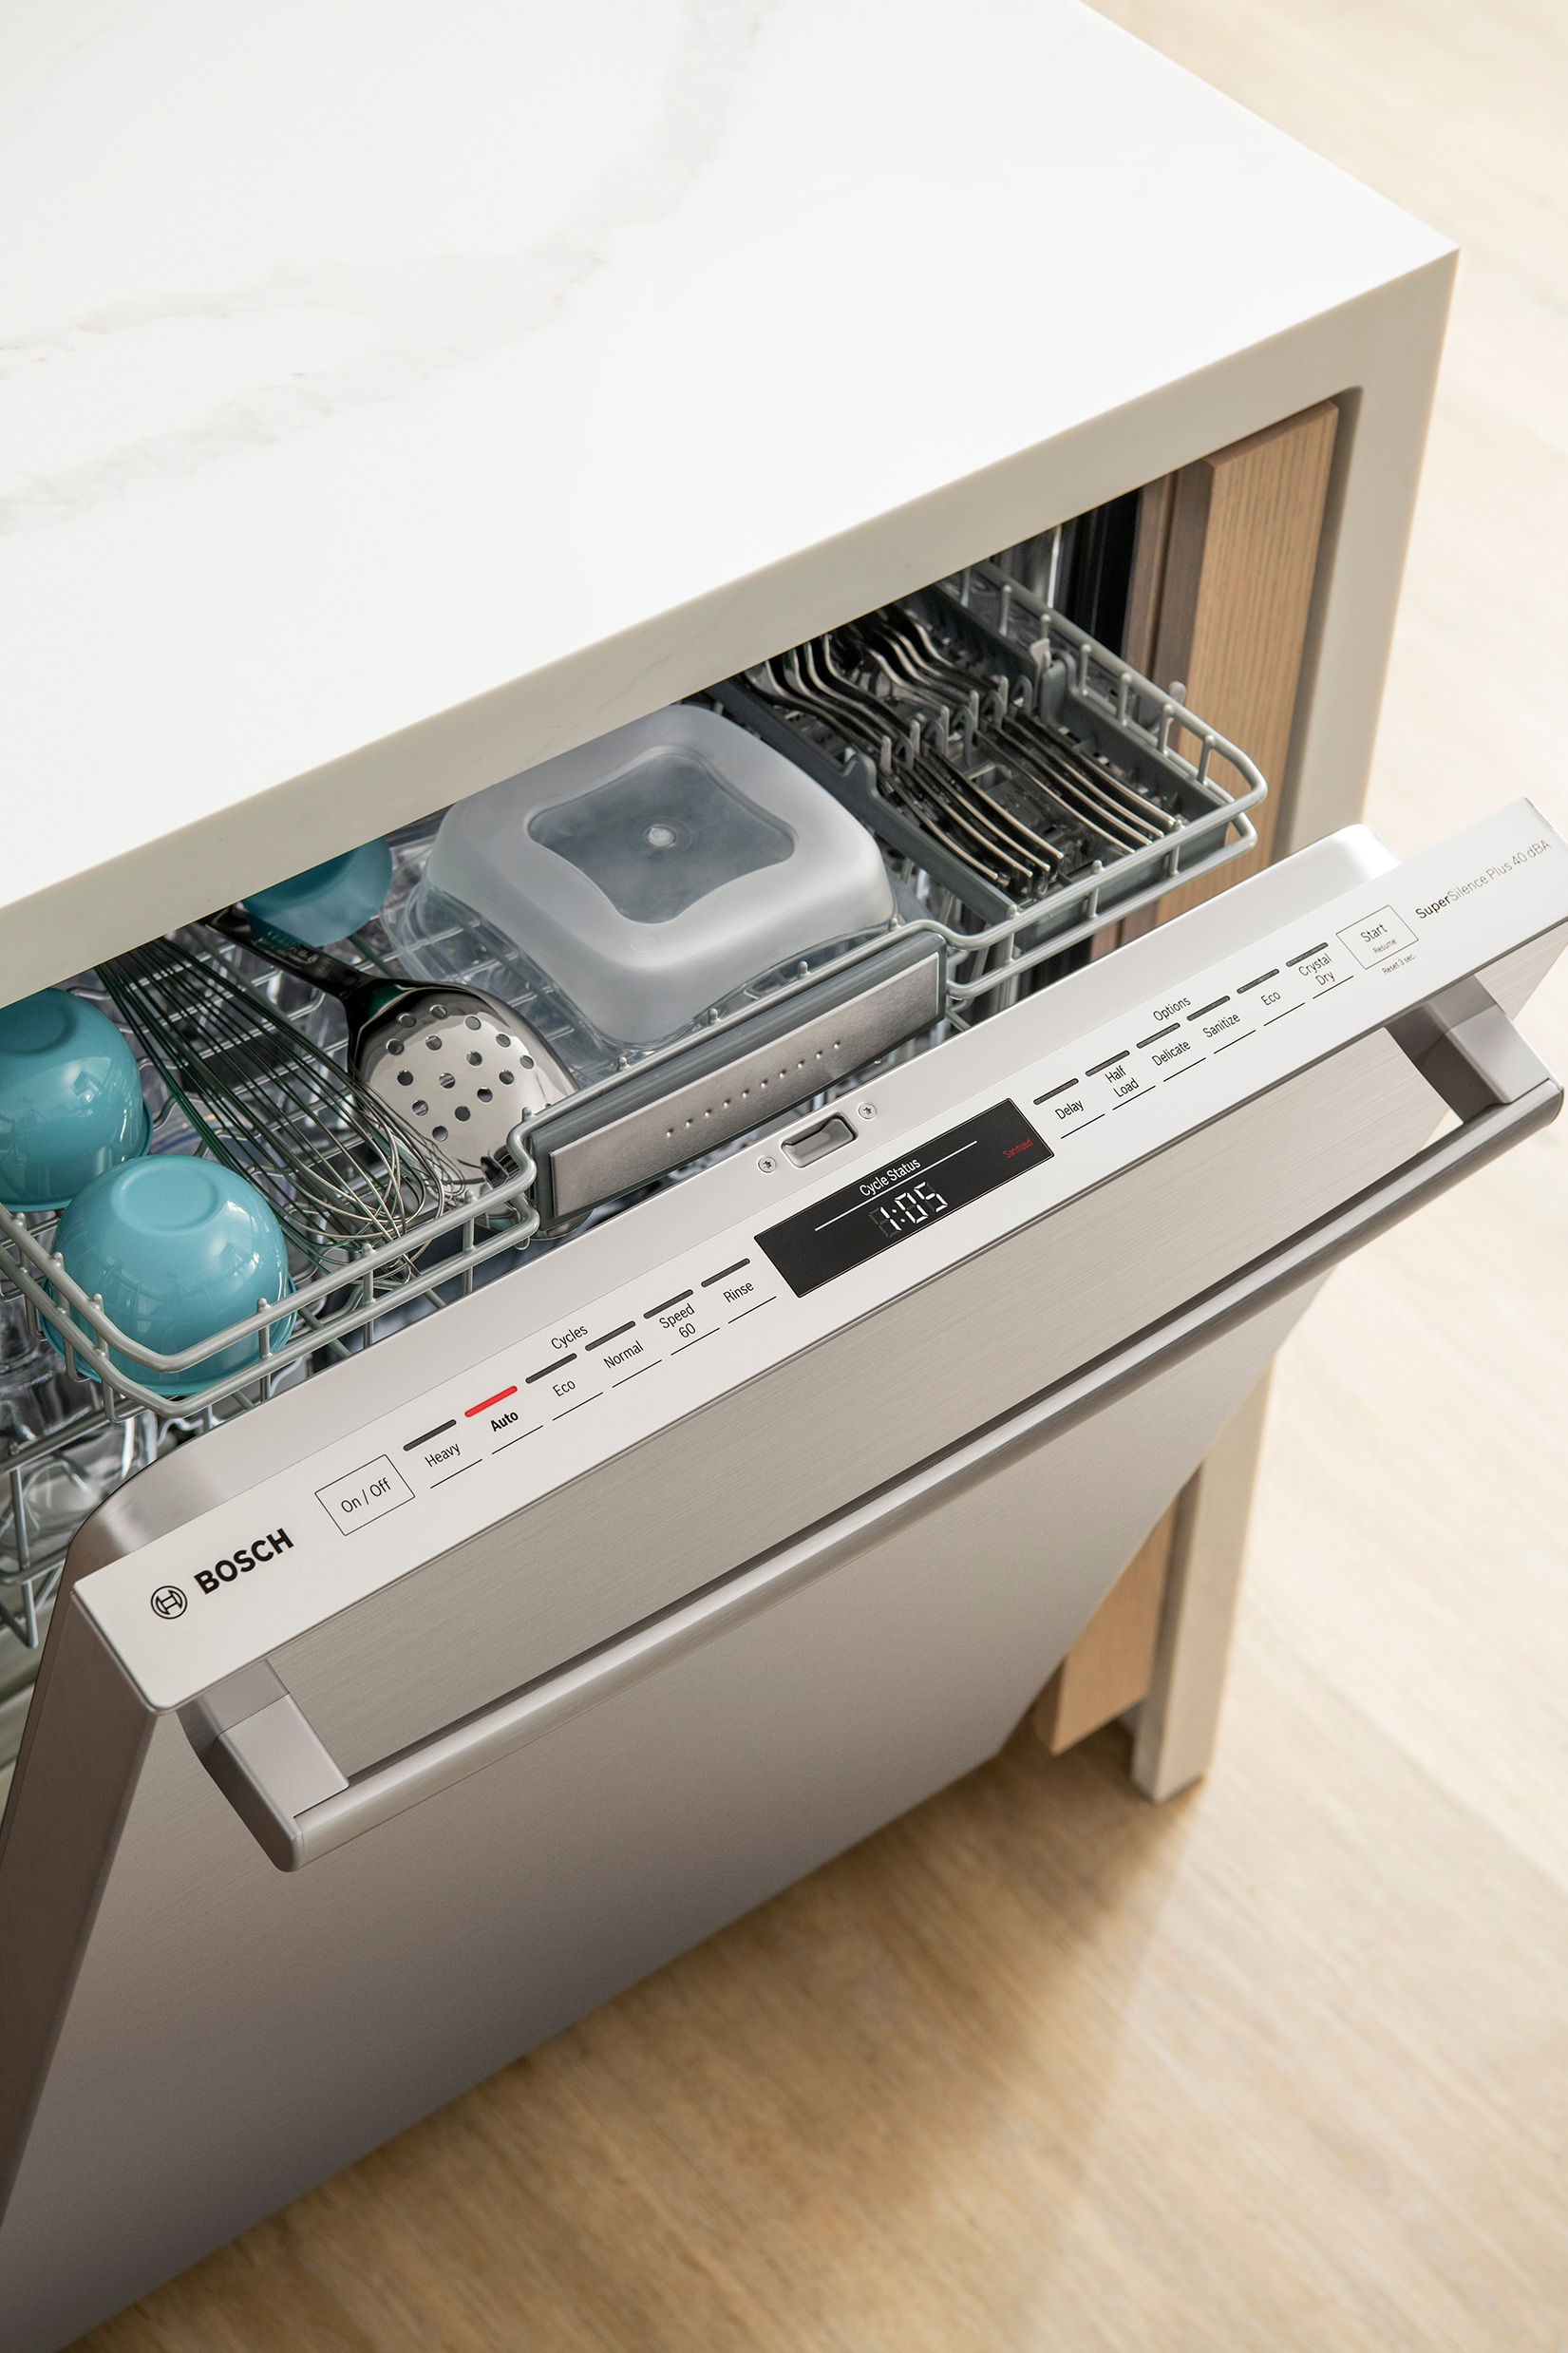 Get Those Dishes CrystalDry™ with a Bosch 800 Series Dishwasher